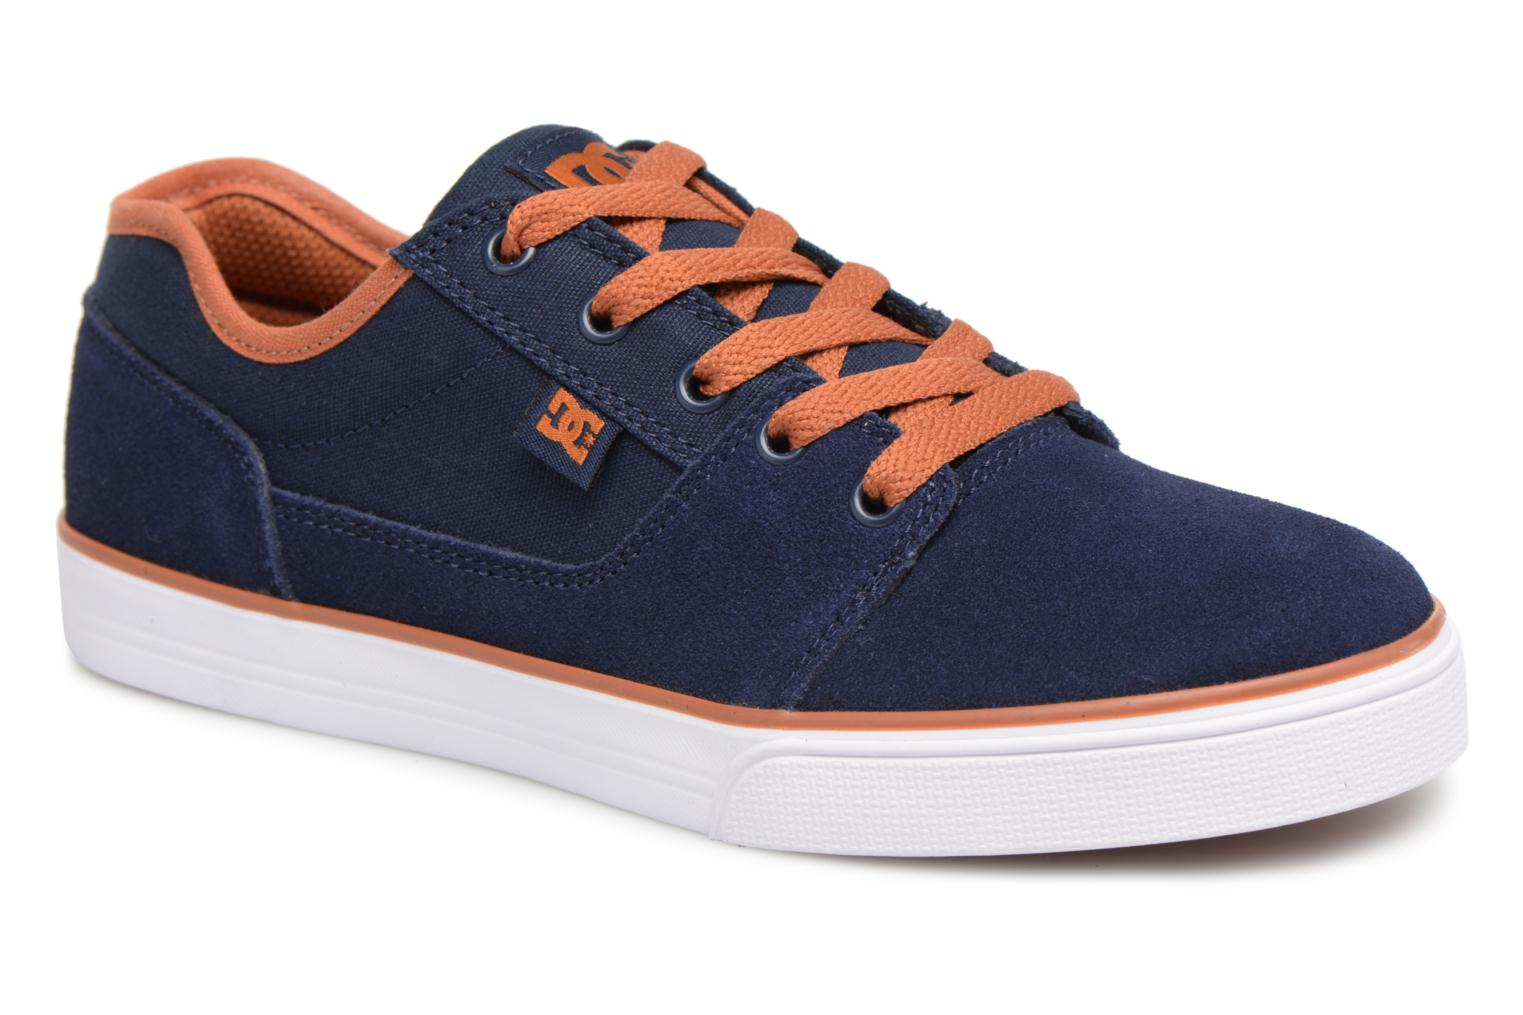 TONIK SE by DC Shoes